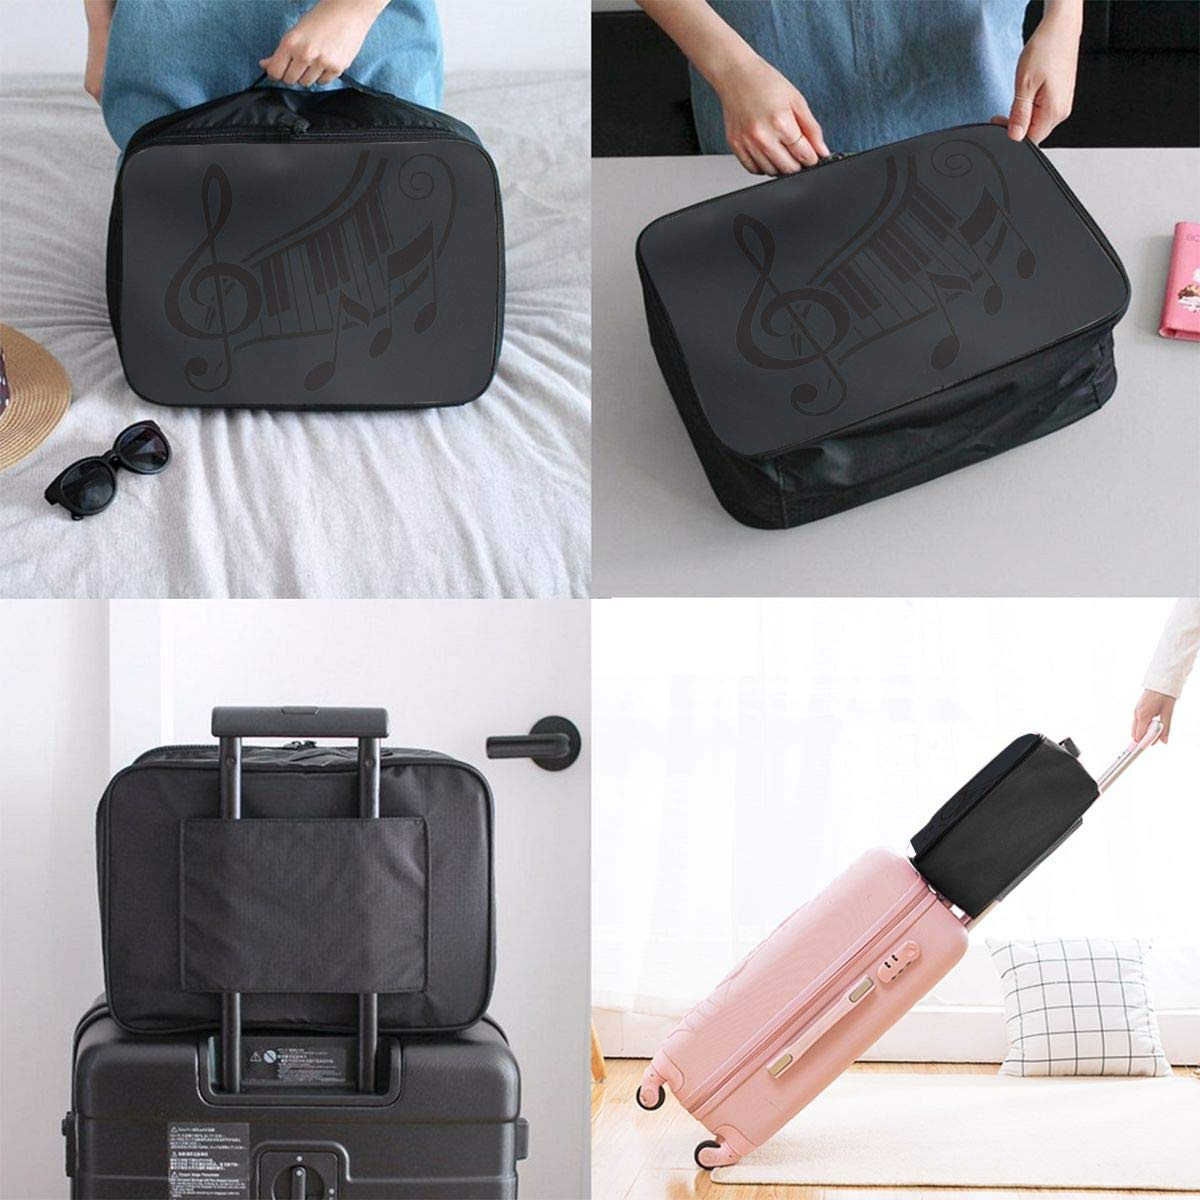 Travel Luggage Duffle Bag Lightweight Portable Handbag Sax Large Capacity Waterproof Foldable Storage Tote